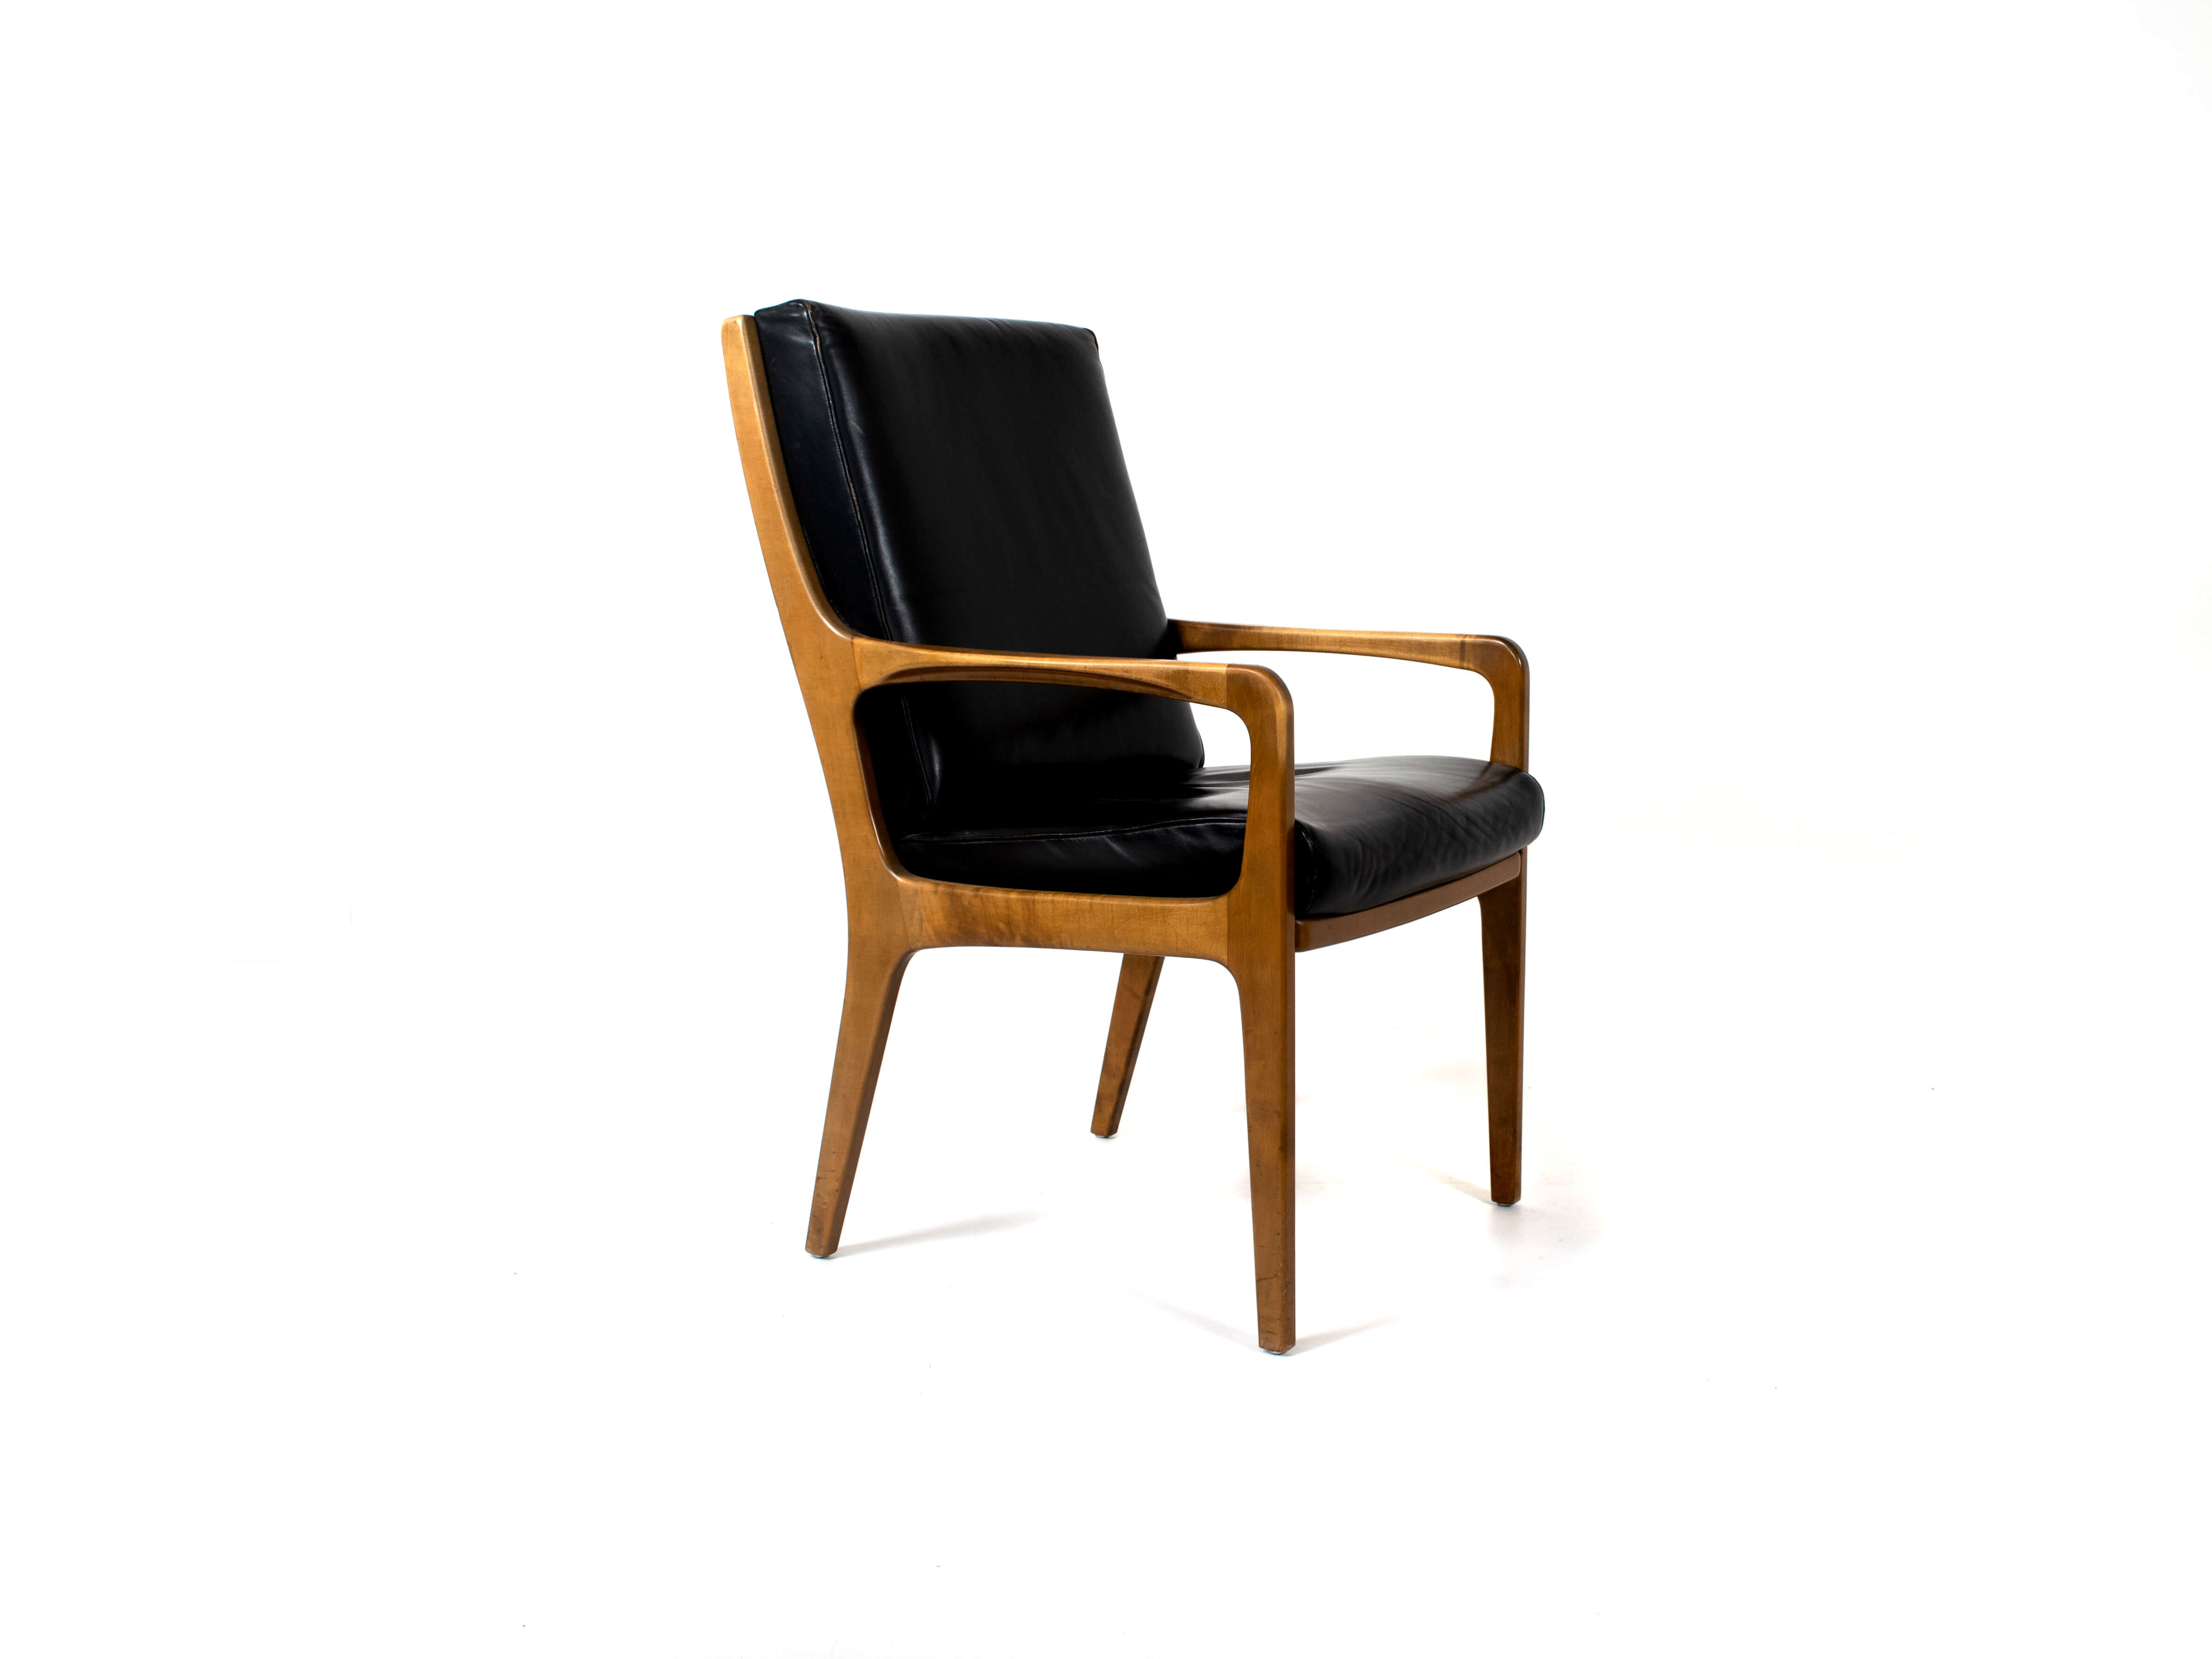 Eugen Schmidt High-Back Conference Chair in Leather and Wood